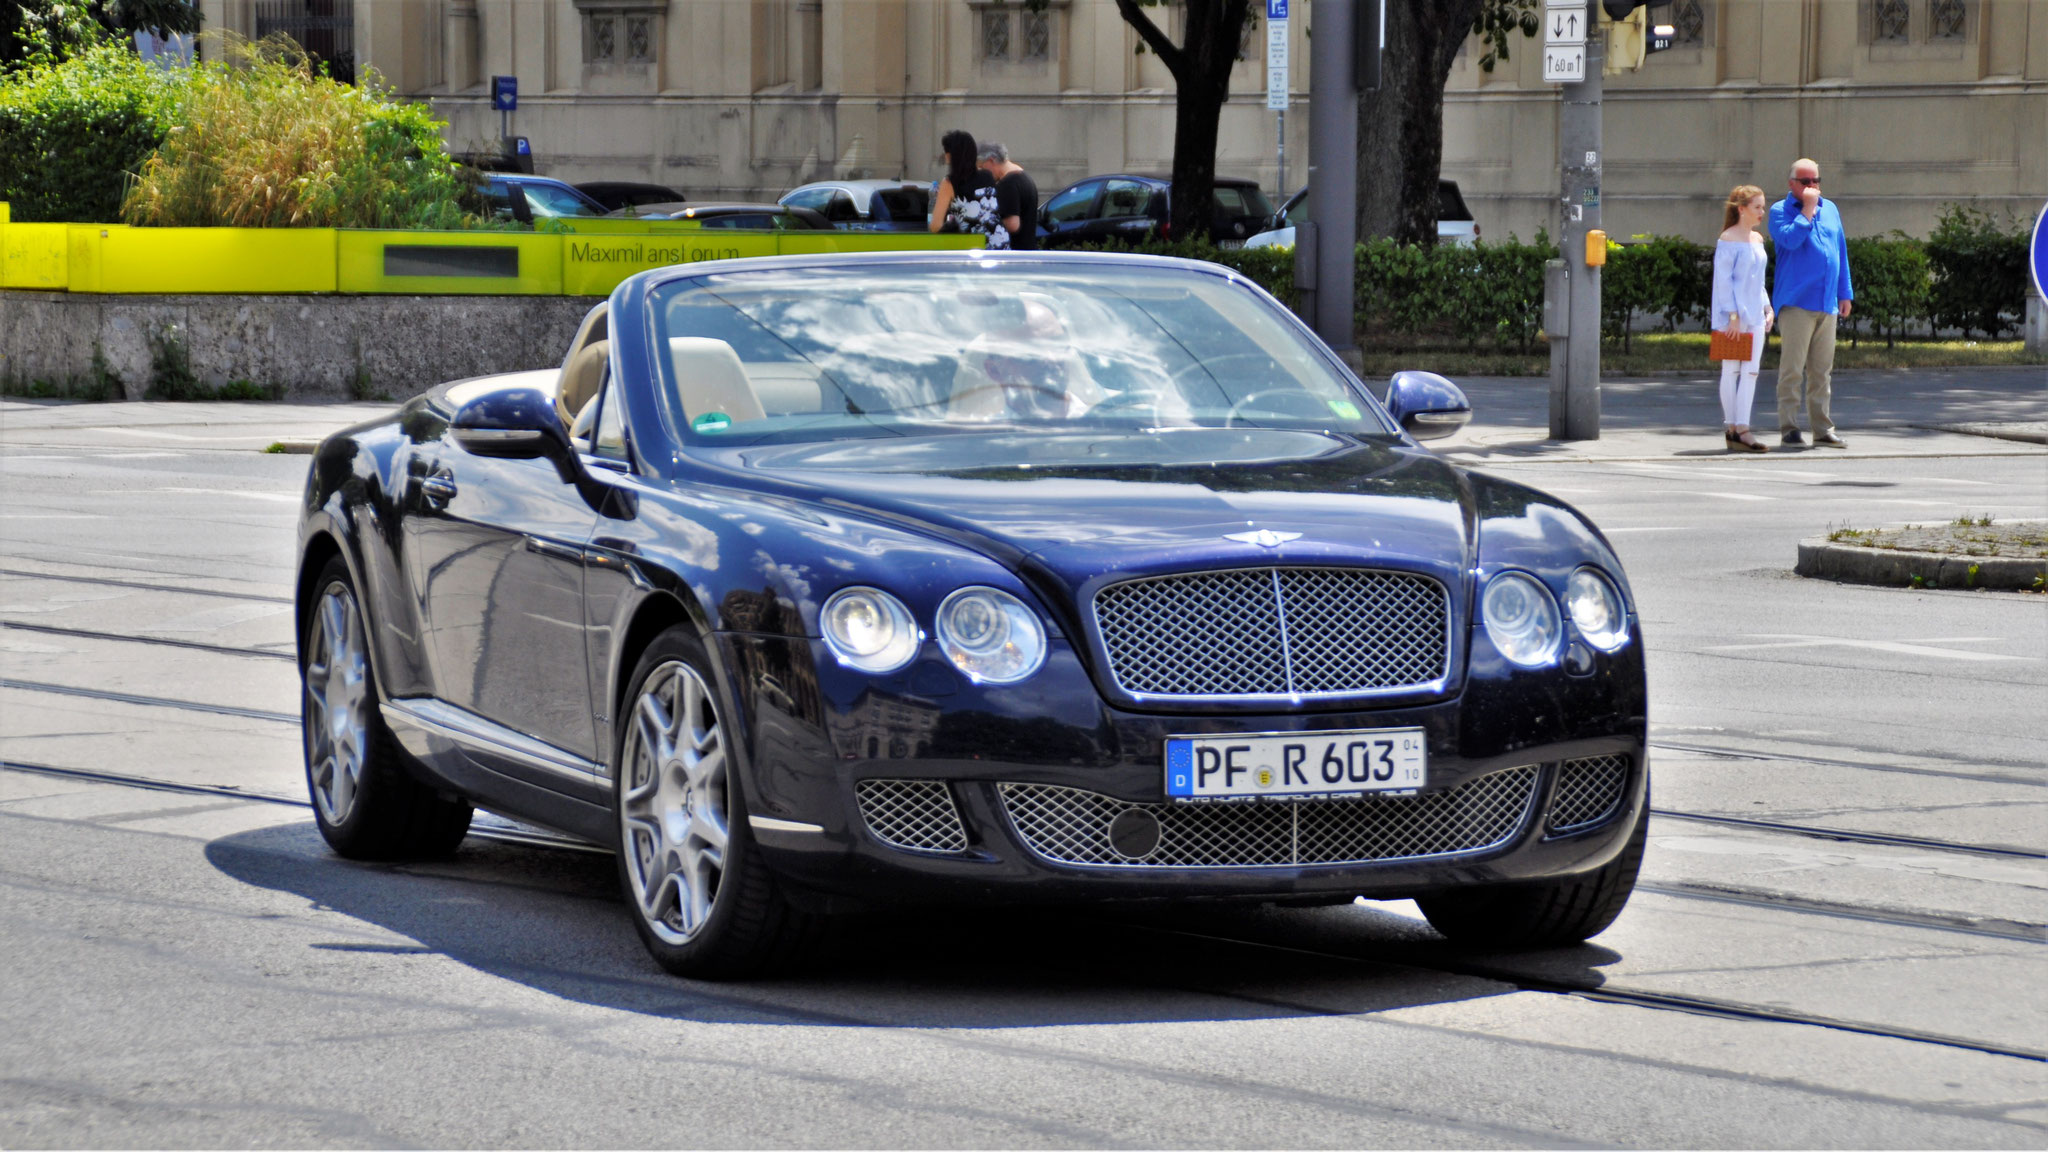 Bentley Continental GTC W12 - PF-R-603